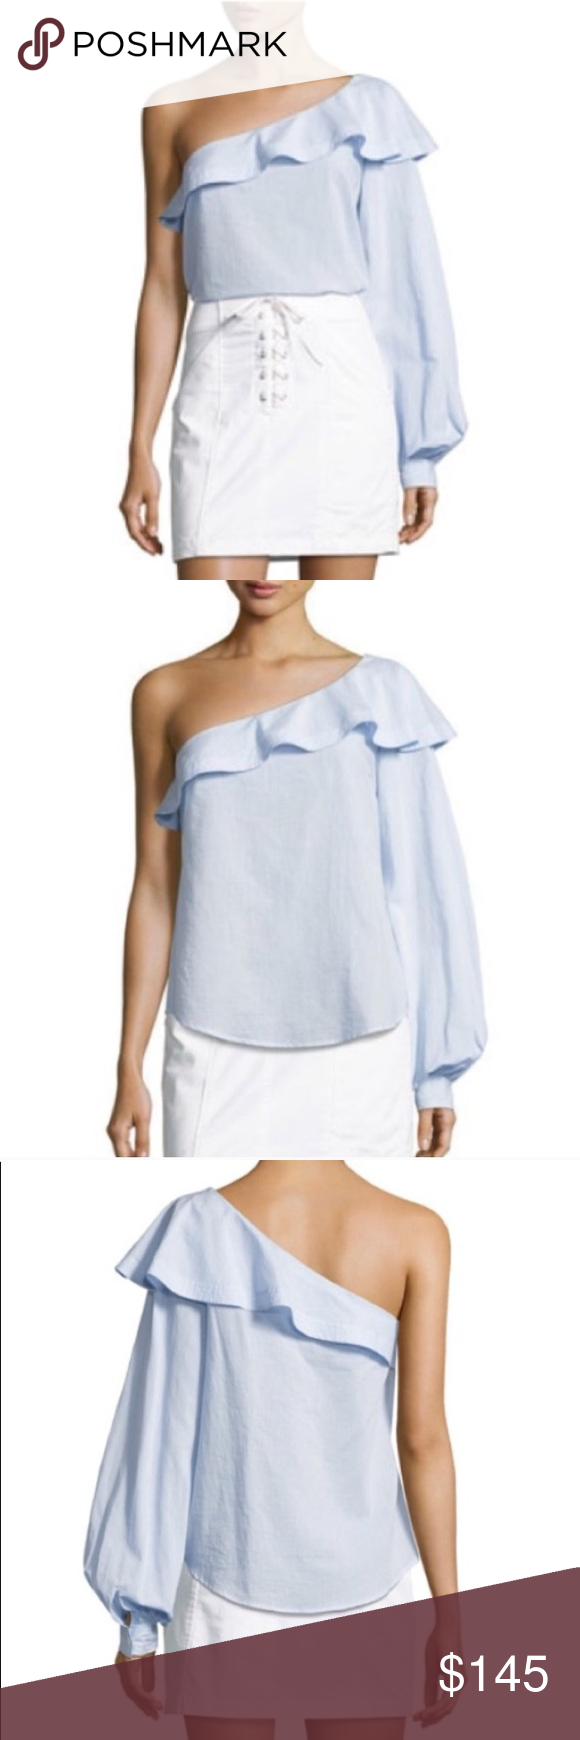 """16b124a4ee6 A.L.C One Shoulder Ruffle Top Bouffant Sleeve NWT A.L.C. """"Brielle"""" one  shoulder/one"""